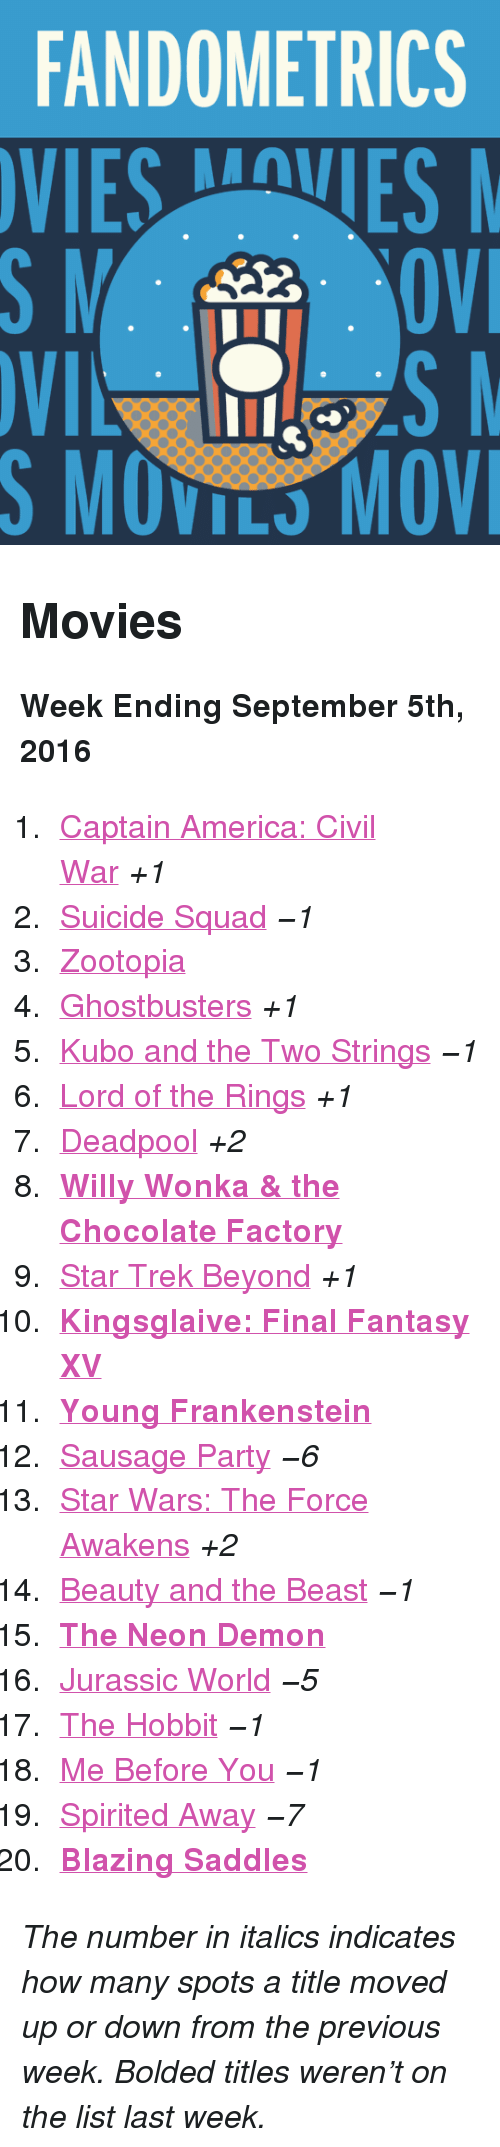 "blazing saddles: FANDOMETRICS  VIESVES  S MOVILS MOV <h2>Movies</h2><p><b>Week Ending September 5th, 2016</b></p><ol><li><a href=""http://www.tumblr.com/search/captain%20america%20civil%20war"">Captain America: Civil War</a> <i>+1</i></li>  <li><a href=""http://www.tumblr.com/search/suicide%20squad"">Suicide Squad</a> <i>−1</i></li>  <li><a href=""http://www.tumblr.com/search/zootopia"">Zootopia</a></li>  <li><a href=""http://www.tumblr.com/search/ghostbusters"">Ghostbusters</a> <i>+1</i></li>  <li><a href=""http://www.tumblr.com/search/kubo%20and%20the%20two%20strings"">Kubo and the Two Strings</a> <i>−1</i></li>  <li><a href=""http://www.tumblr.com/search/lotr"">Lord of the Rings</a> <i>+1</i></li>  <li><a href=""http://www.tumblr.com/search/deadpool"">Deadpool</a> <i>+2</i></li>  <li><a href=""http://www.tumblr.com/search/willy%20wonka""><b>Willy Wonka &amp; the Chocolate Factory</b></a></li>  <li><a href=""http://www.tumblr.com/search/star%20trek%20beyond"">Star Trek Beyond</a> <i>+1</i></li>  <li><a href=""http://www.tumblr.com/search/kingsglaive""><b>Kingsglaive: Final Fantasy XV</b></a></li>  <li><a href=""http://www.tumblr.com/search/young%20frankenstein""><b>Young Frankenstein</b></a></li>  <li><a href=""http://www.tumblr.com/search/sausage%20party"">Sausage Party</a> <i>−6</i></li>  <li><a href=""http://www.tumblr.com/search/the%20force%20awakens"">Star Wars: The Force Awakens</a> <i>+2</i></li>  <li><a href=""http://www.tumblr.com/search/beauty%20and%20the%20beast"">Beauty and the Beast</a> <i>−1</i></li>  <li><a href=""http://www.tumblr.com/search/the%20neon%20demon""><b>The Neon Demon</b></a></li>  <li><a href=""http://www.tumblr.com/search/jurassic%20world"">Jurassic World</a> <i>−5</i></li>  <li><a href=""http://www.tumblr.com/search/the%20hobbit"">The Hobbit</a> <i>−1</i></li>  <li><a href=""http://www.tumblr.com/search/me%20before%20you"">Me Before You</a> <i>−1</i></li>  <li><a href=""http://www.tumblr.com/search/spirited%20away"">Spirited Away</a> <i>−7</i></li>  <li><a href=""http://www.tumblr.com/search/blazing%20saddles""><b>Blazing Saddles</b></a></li></ol><p><i>The number in italics indicates how many spots a title moved up or down from the previous week. Bolded titles weren't on the list last week.</i></p>"